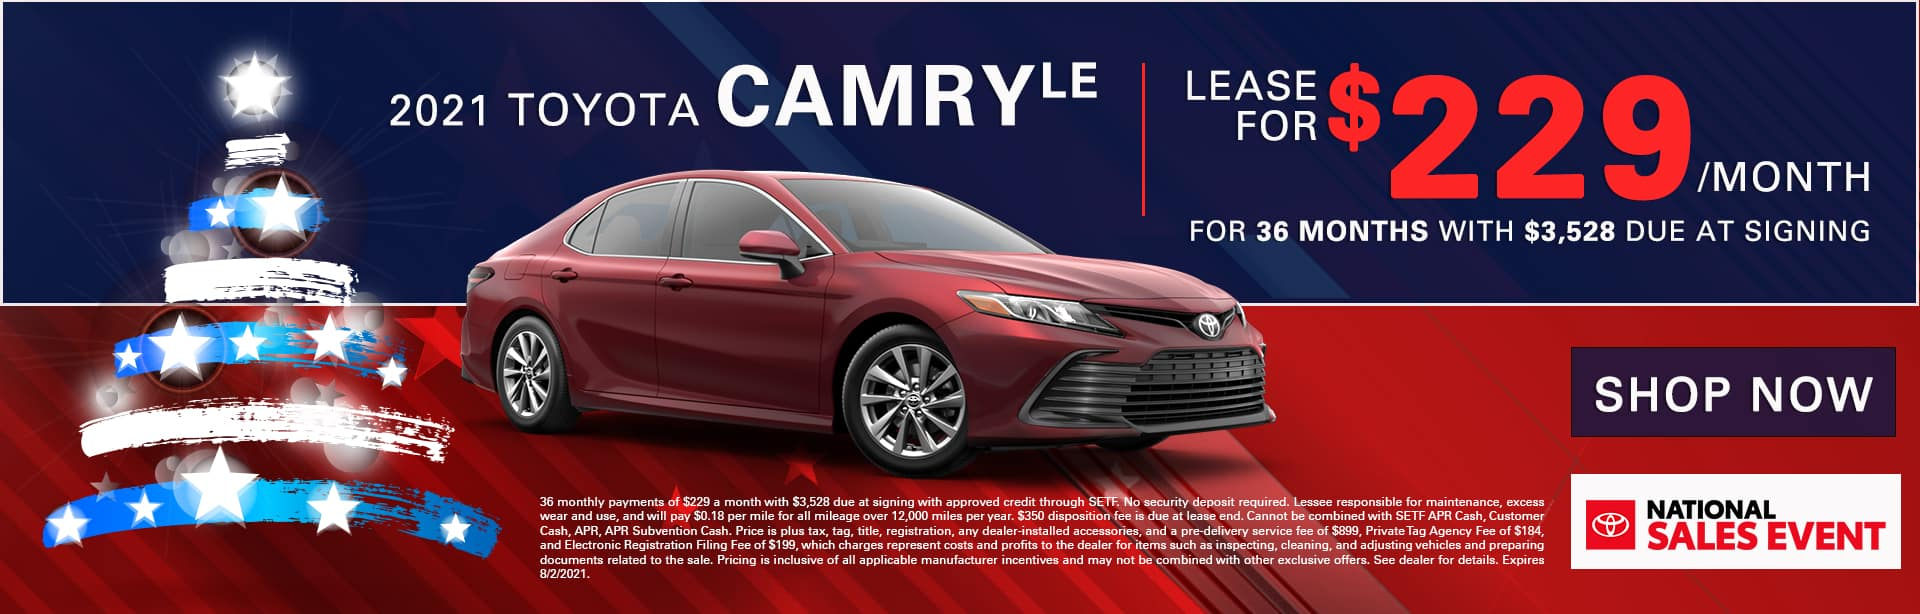 2021 Toyota Camry LE | Lease For $229/Month for 36 Months with $3,528 Due At Signing